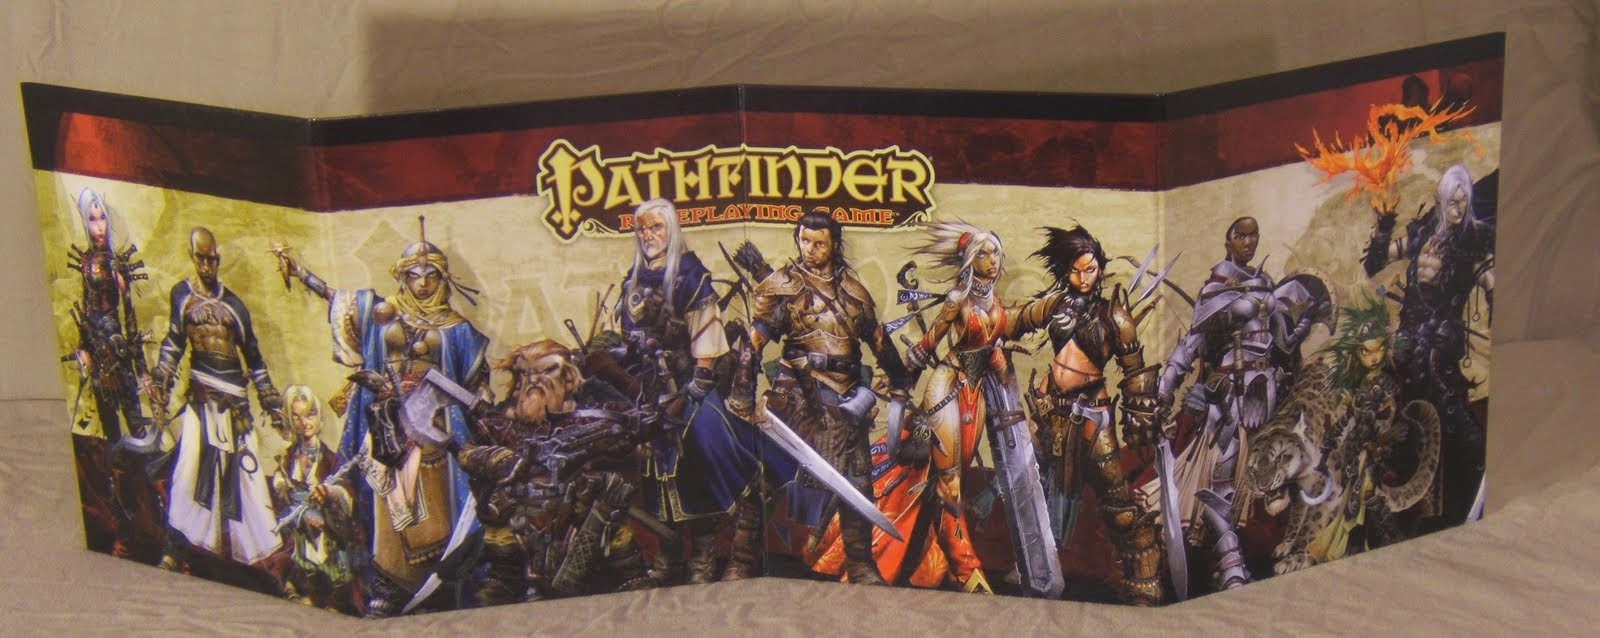 http://www.paperspencils.com/2011/12/03/product-review-pathfinder-gm-screen/